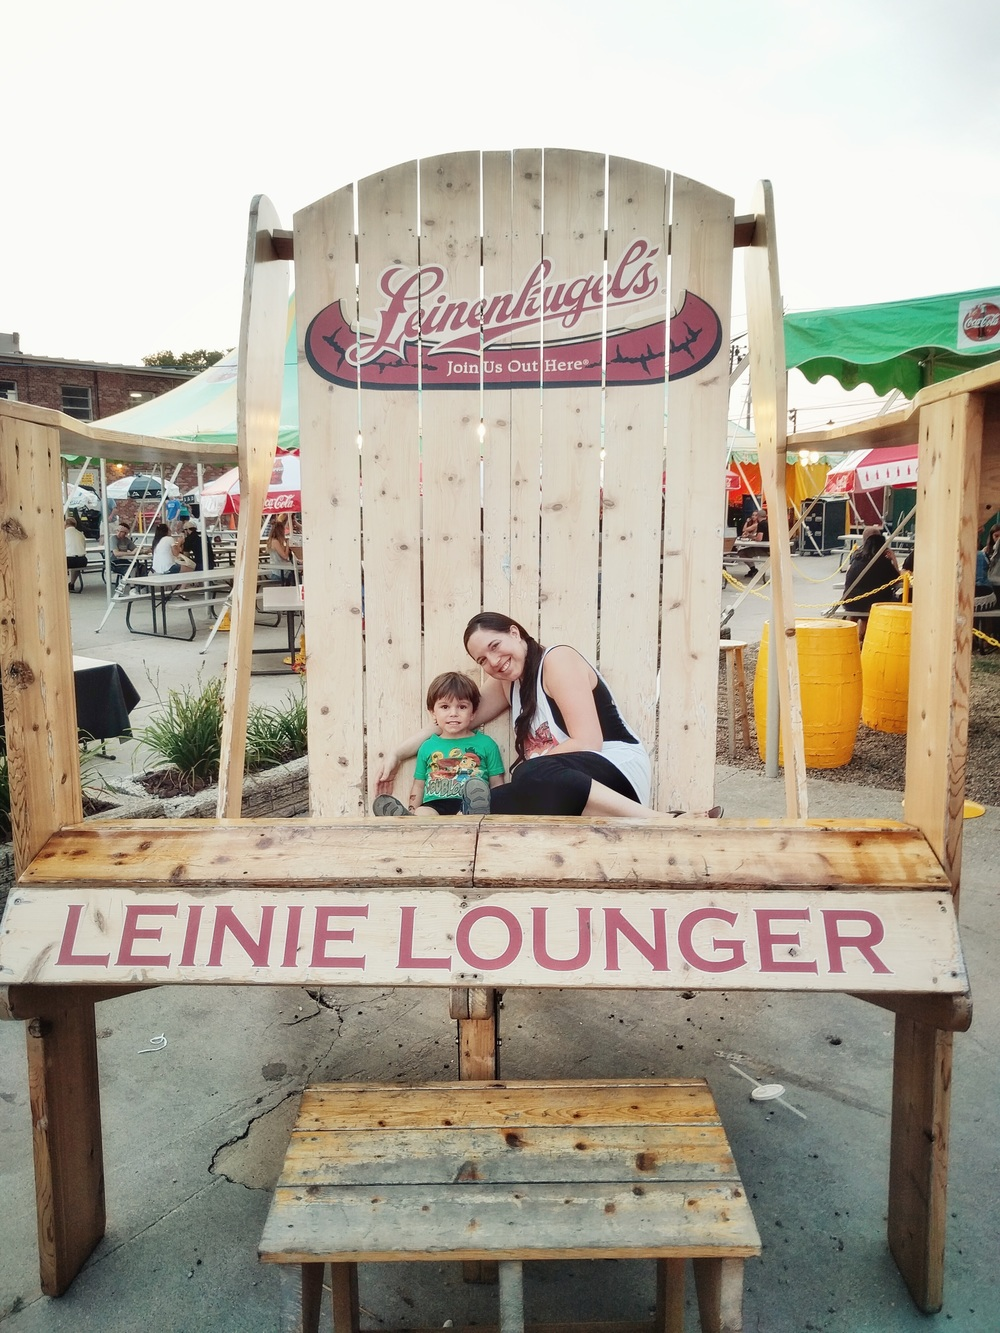 The Leinie Lounger